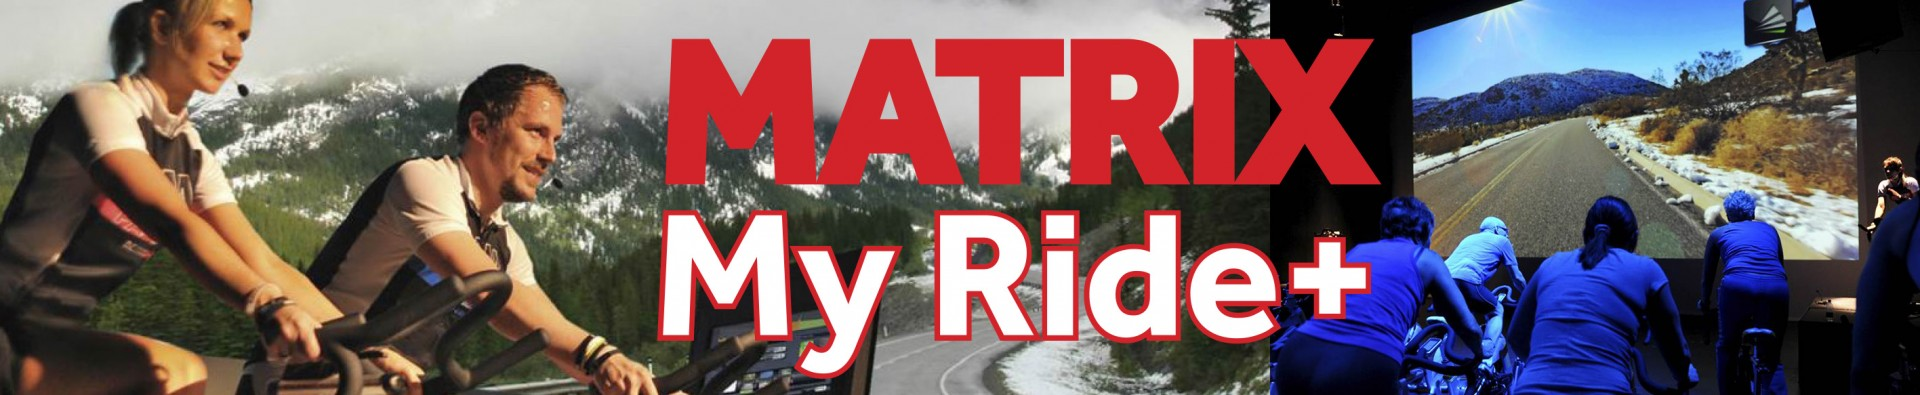 Matrix My Ride+